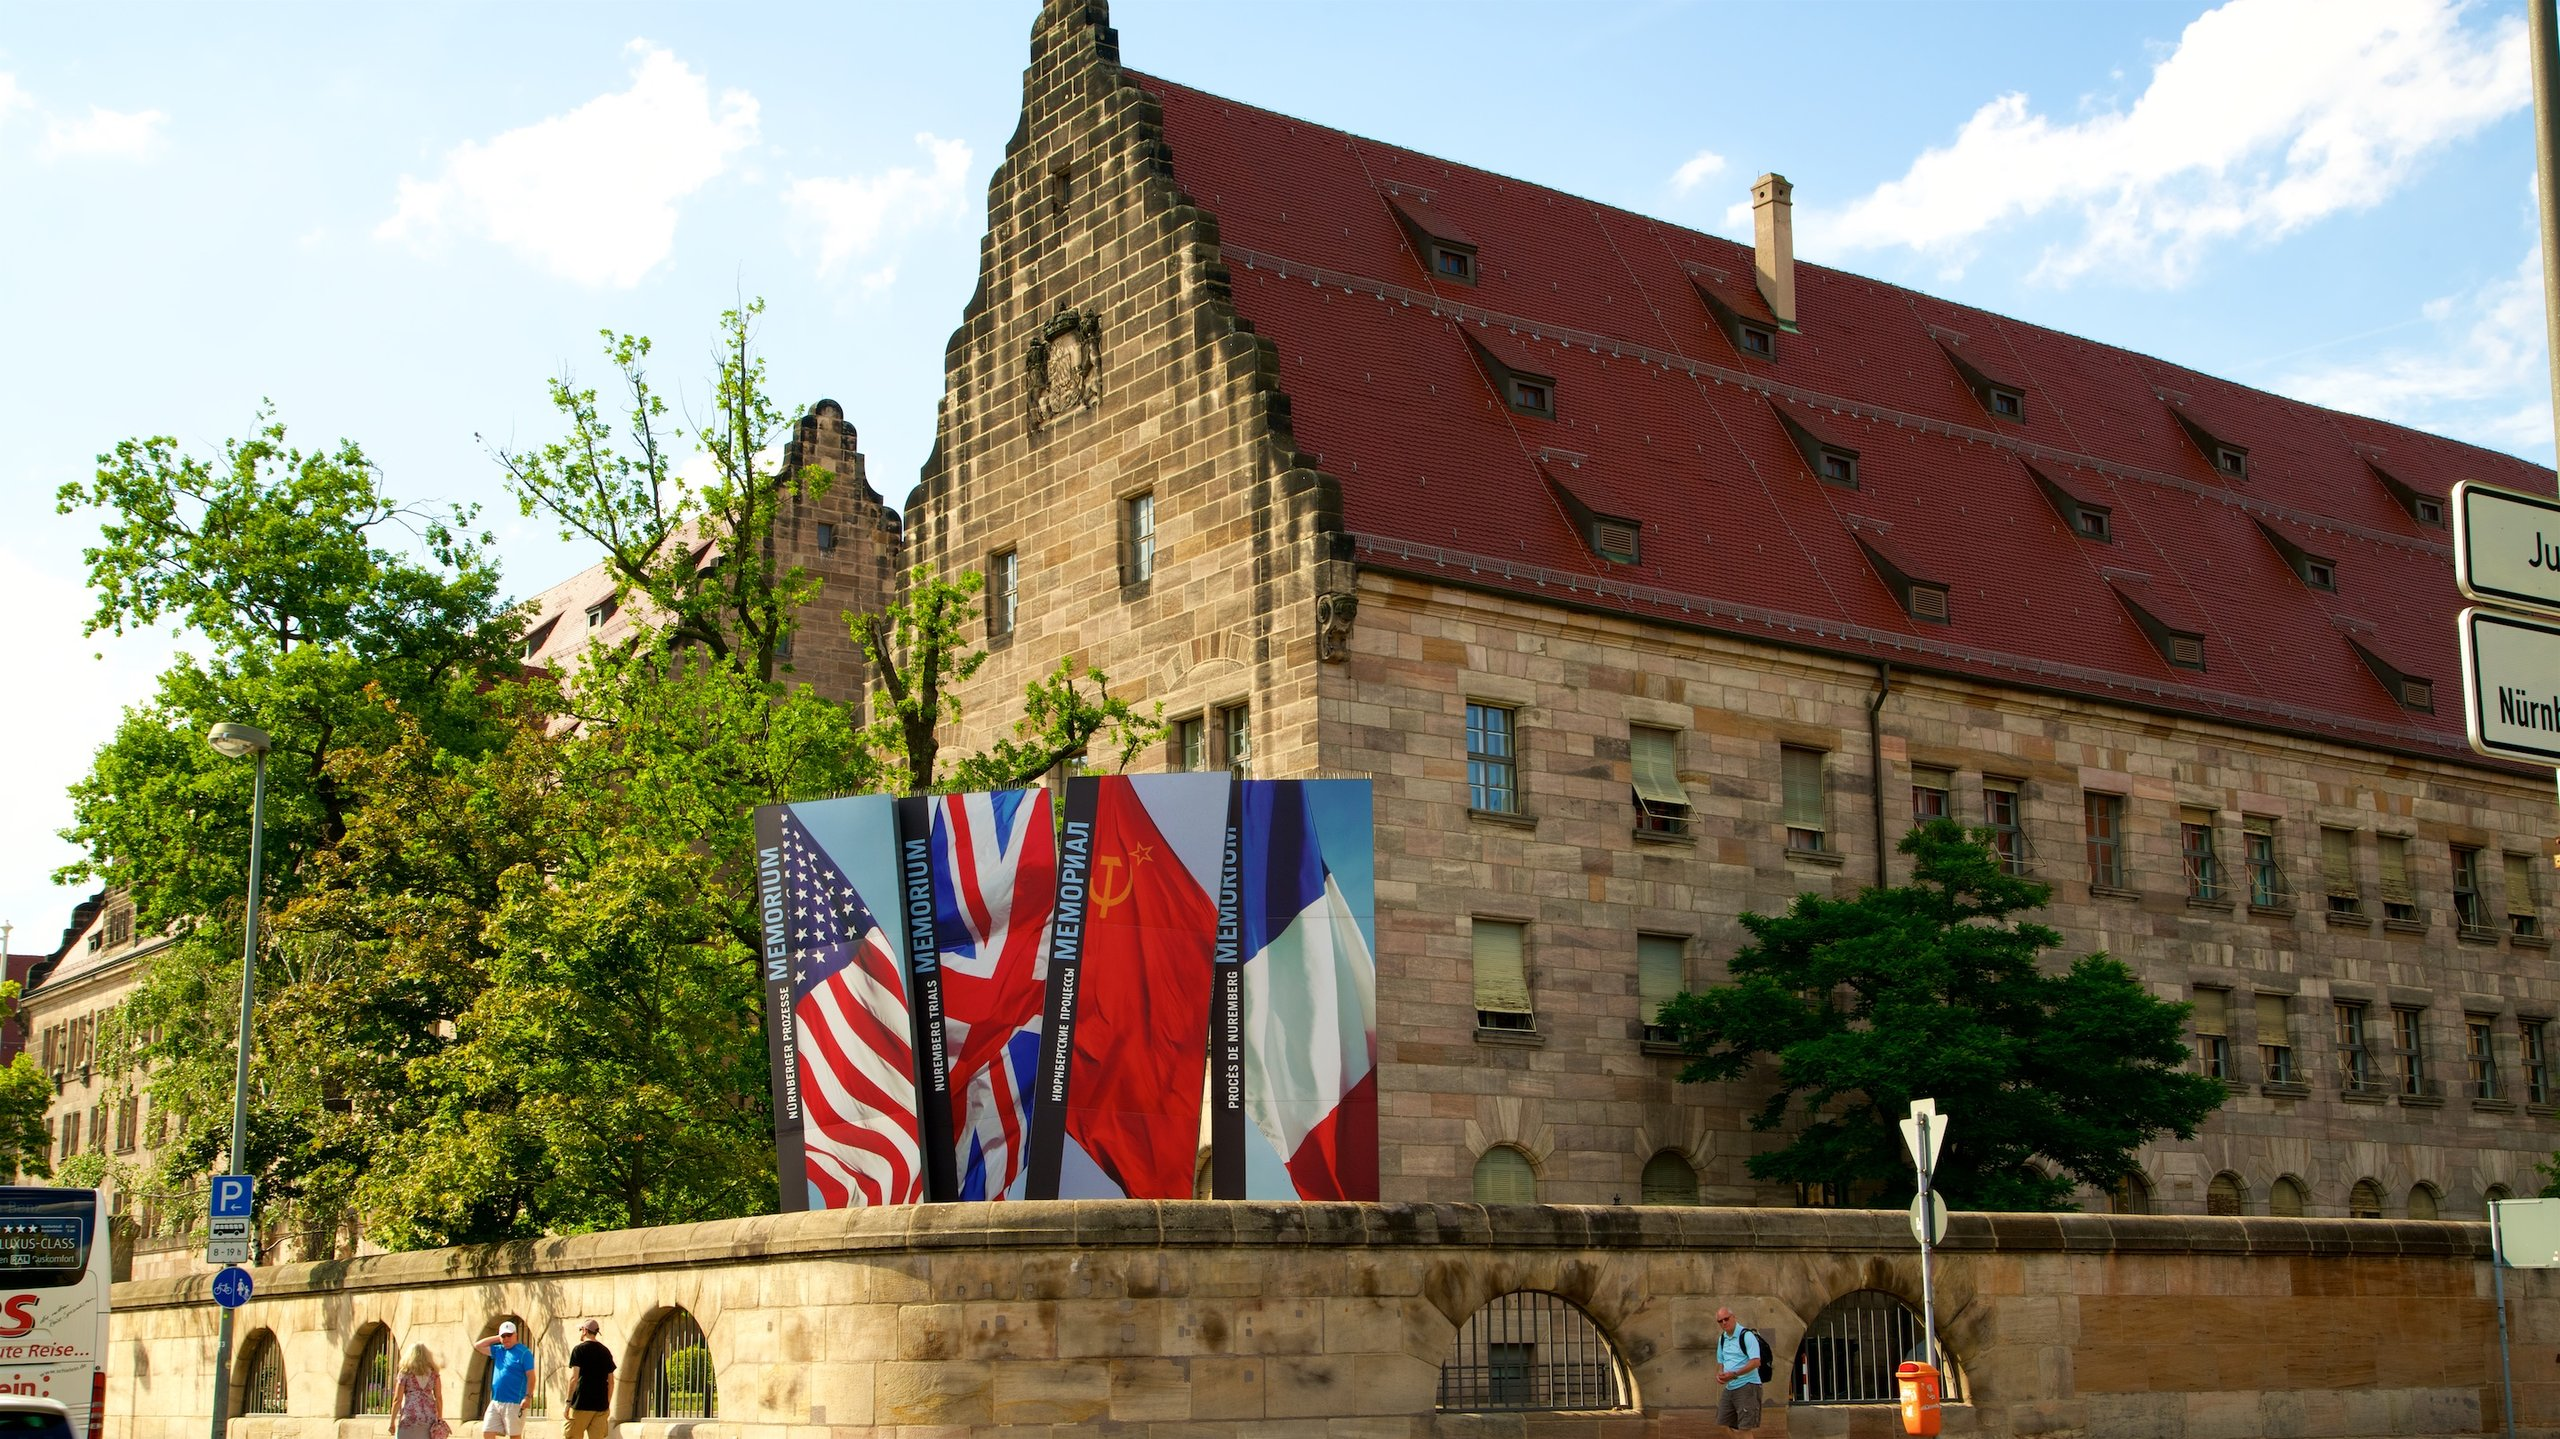 Visit a permanent exhibition and memoriam to the Nuremberg Trials, which convicted German war criminals after the atrocities of World War II.